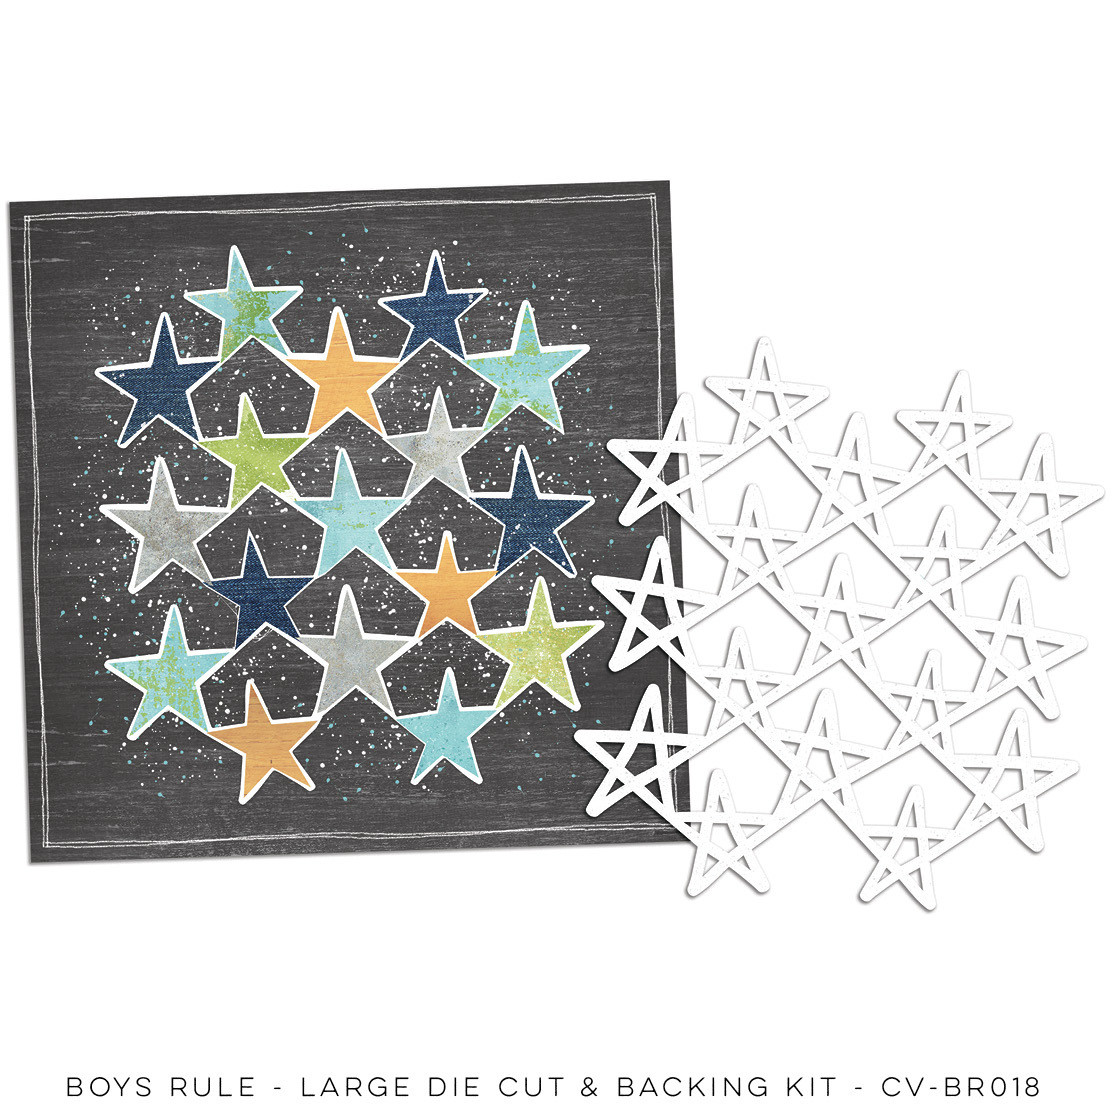 Cocoa Vanilla Boys Rule Large Die Cut & Backing Kit